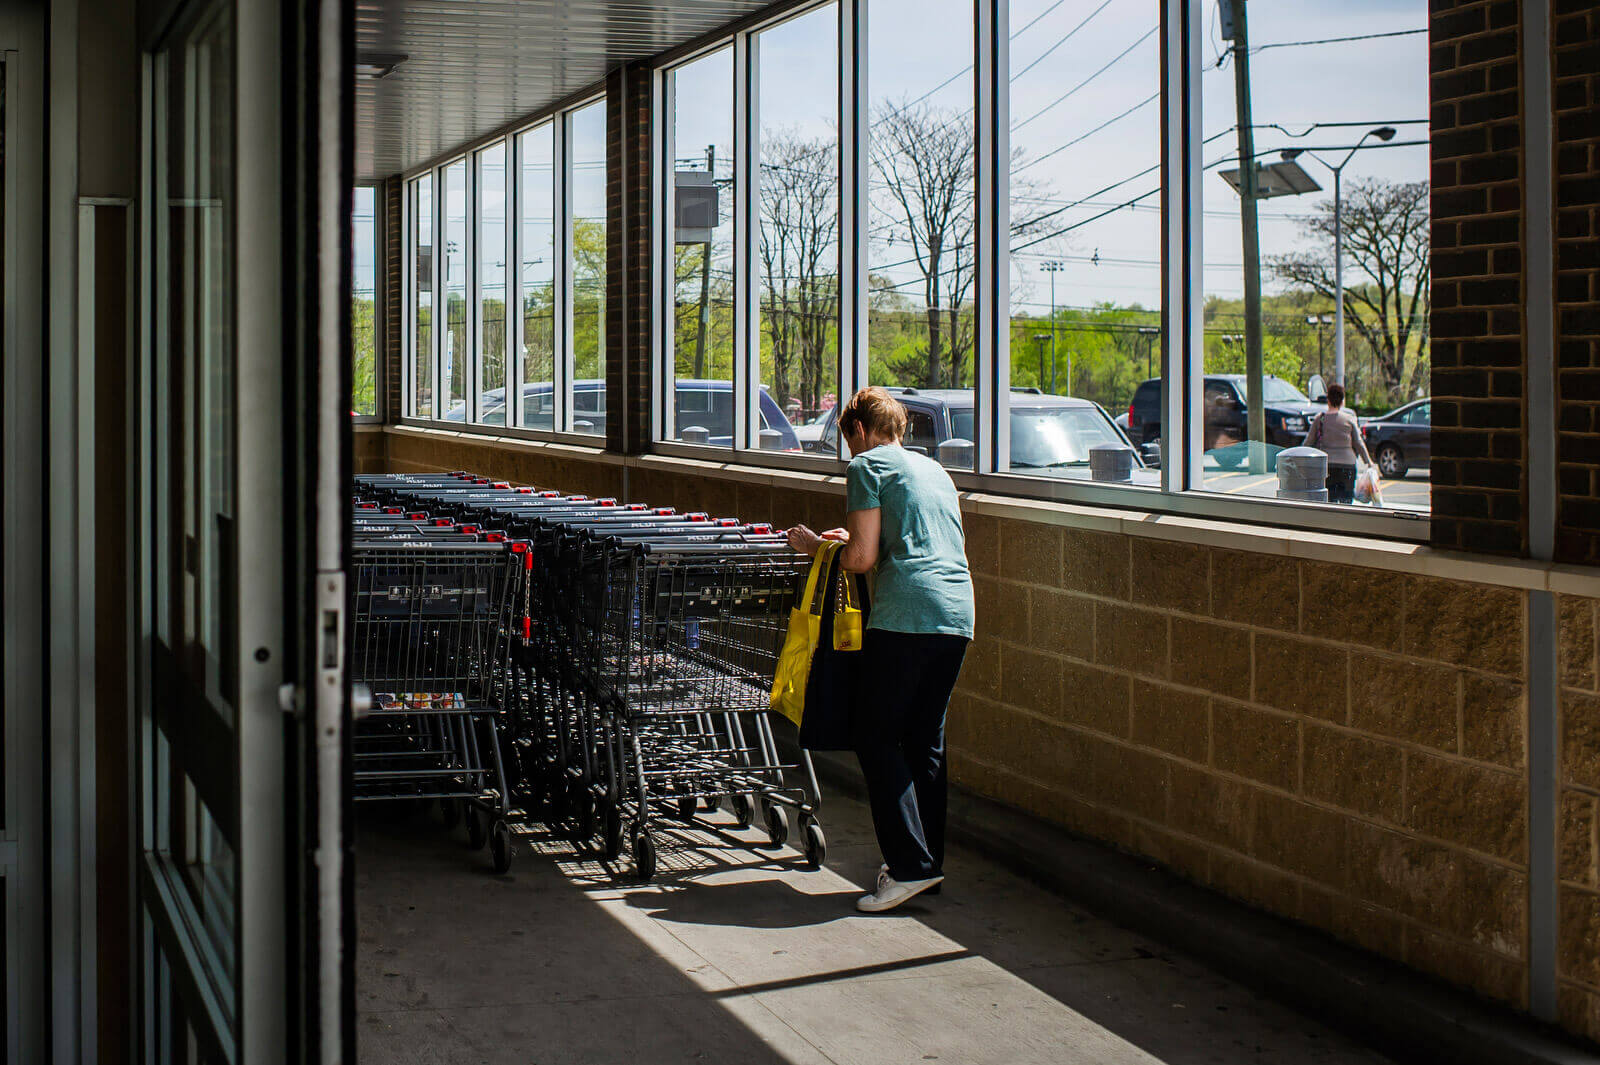 Other American grocers have tried shopping cart deposits but abandoned the practice after it irritated shoppers. Aldi has stuck with the model, insisting it's core to the store's low-cost strategy.